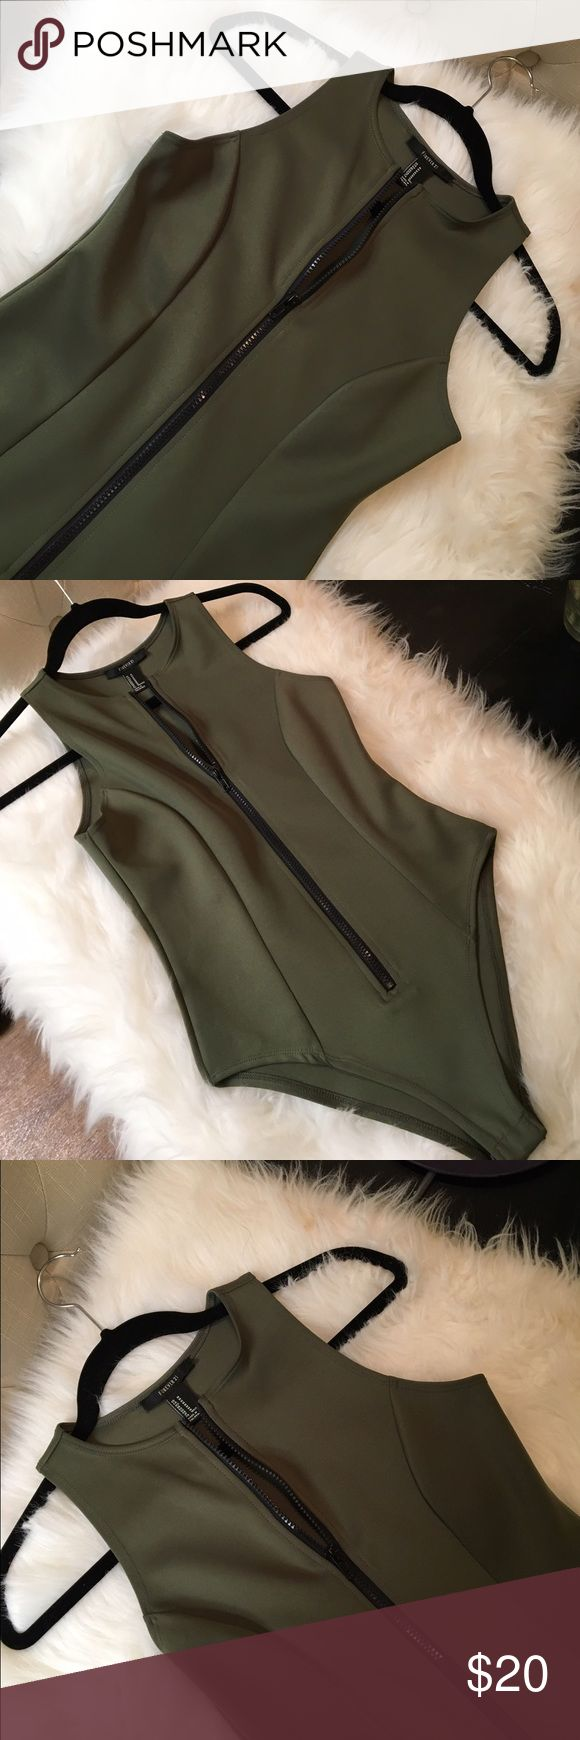 💚Chic army green scuba bodysuit💚 Super cute army green bodysuit with a black zipper down the front! Perfect condition only work once✨ Forever 21 Other